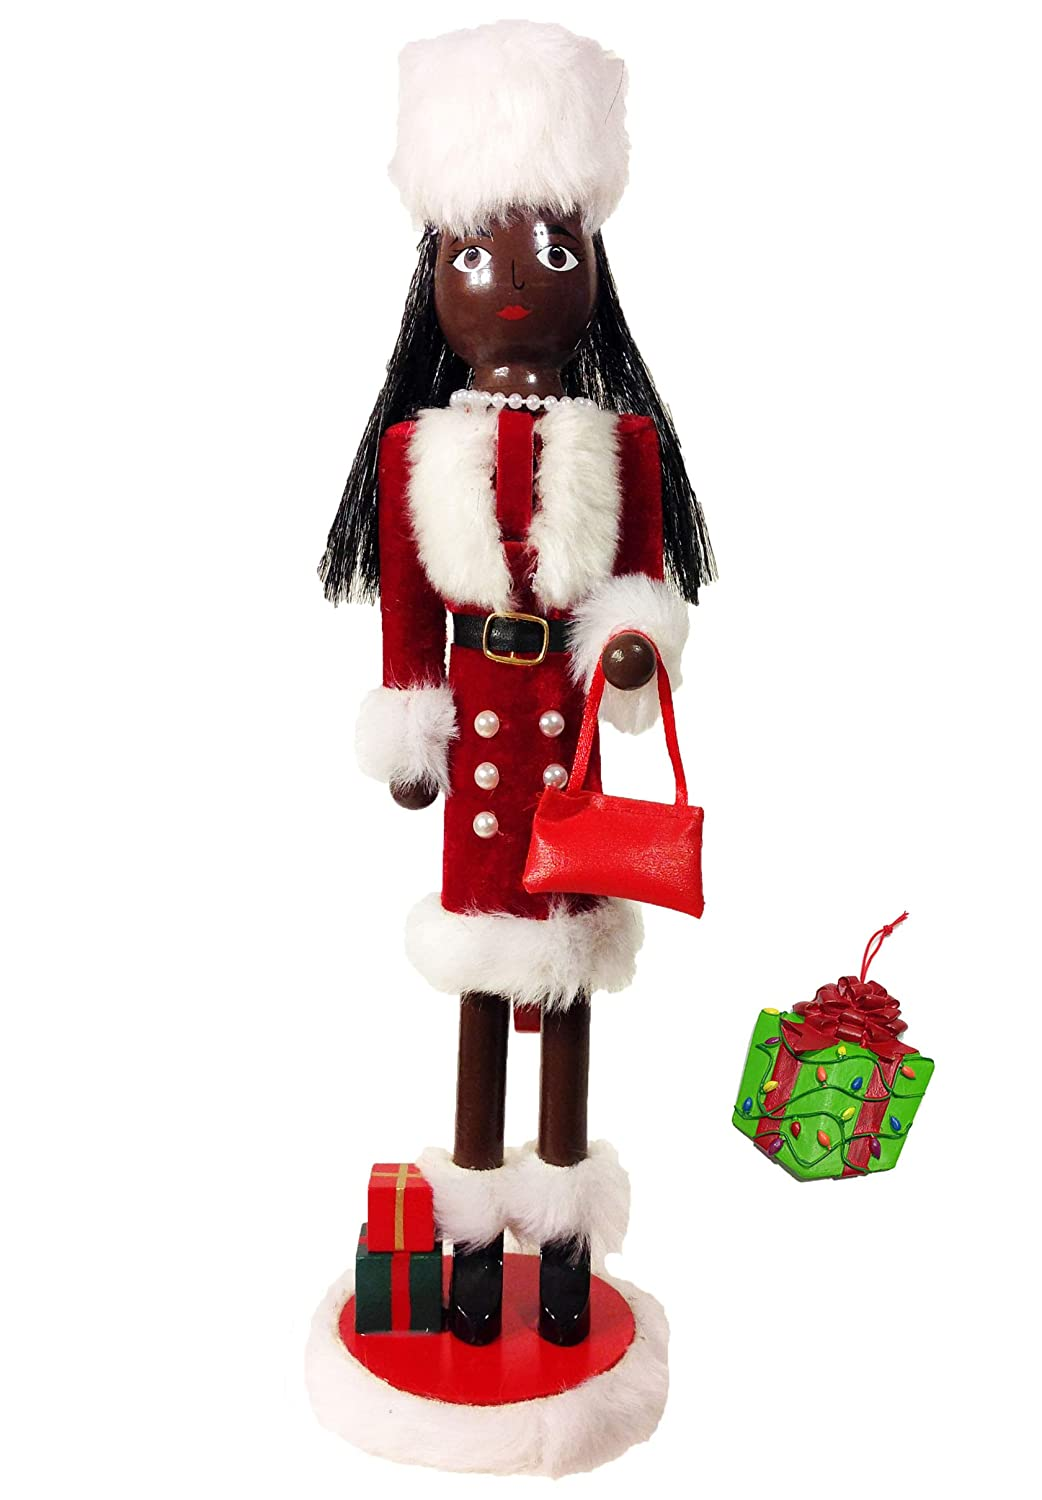 Distinctive Designs African American Shopping Girl Large Unique Decorative Holiday Season Wooden Christmas Nutcracker & Bonus Tree Ornament